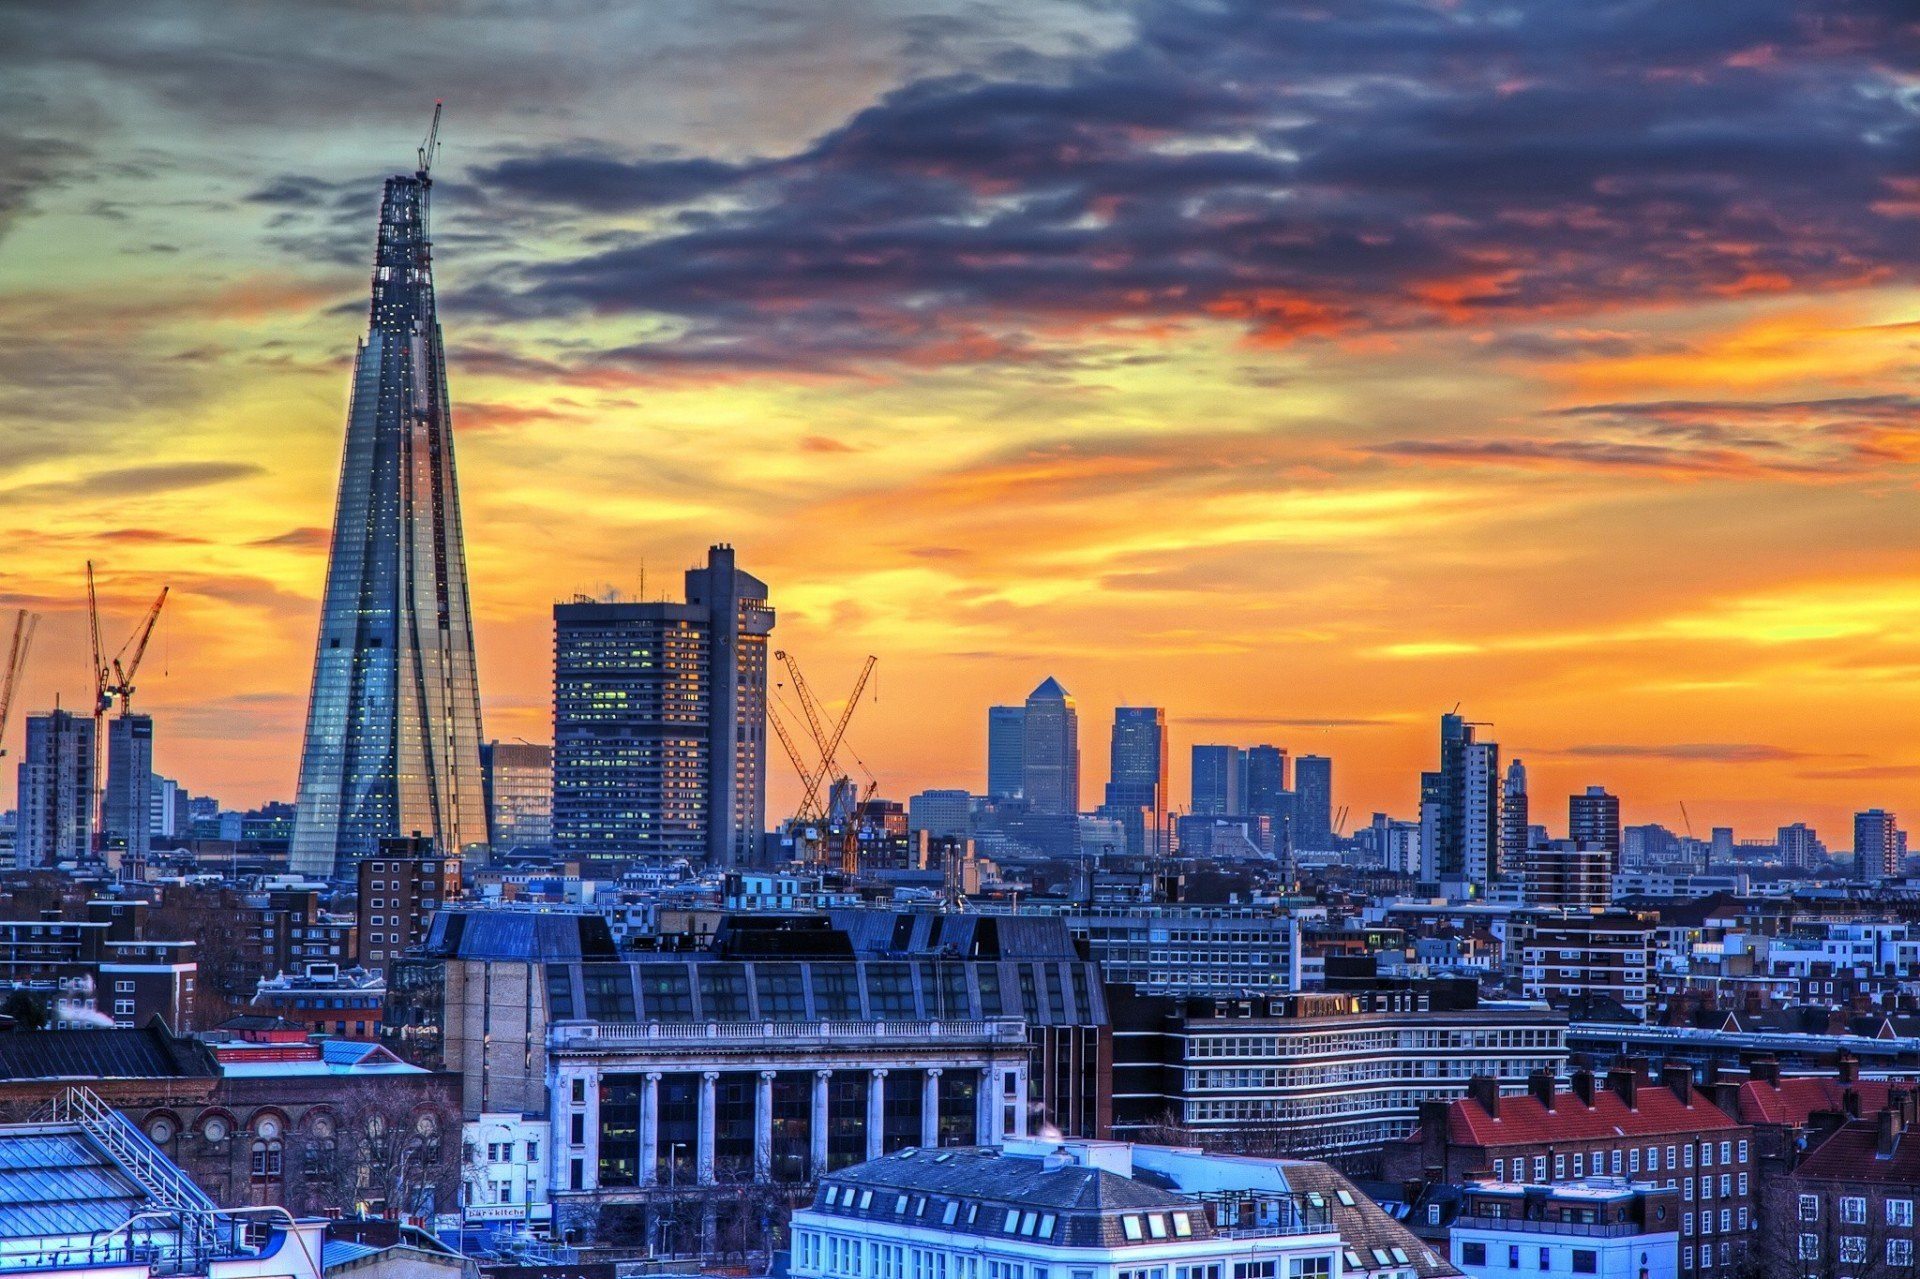 hd london wallpaper, 4k wallpaper london